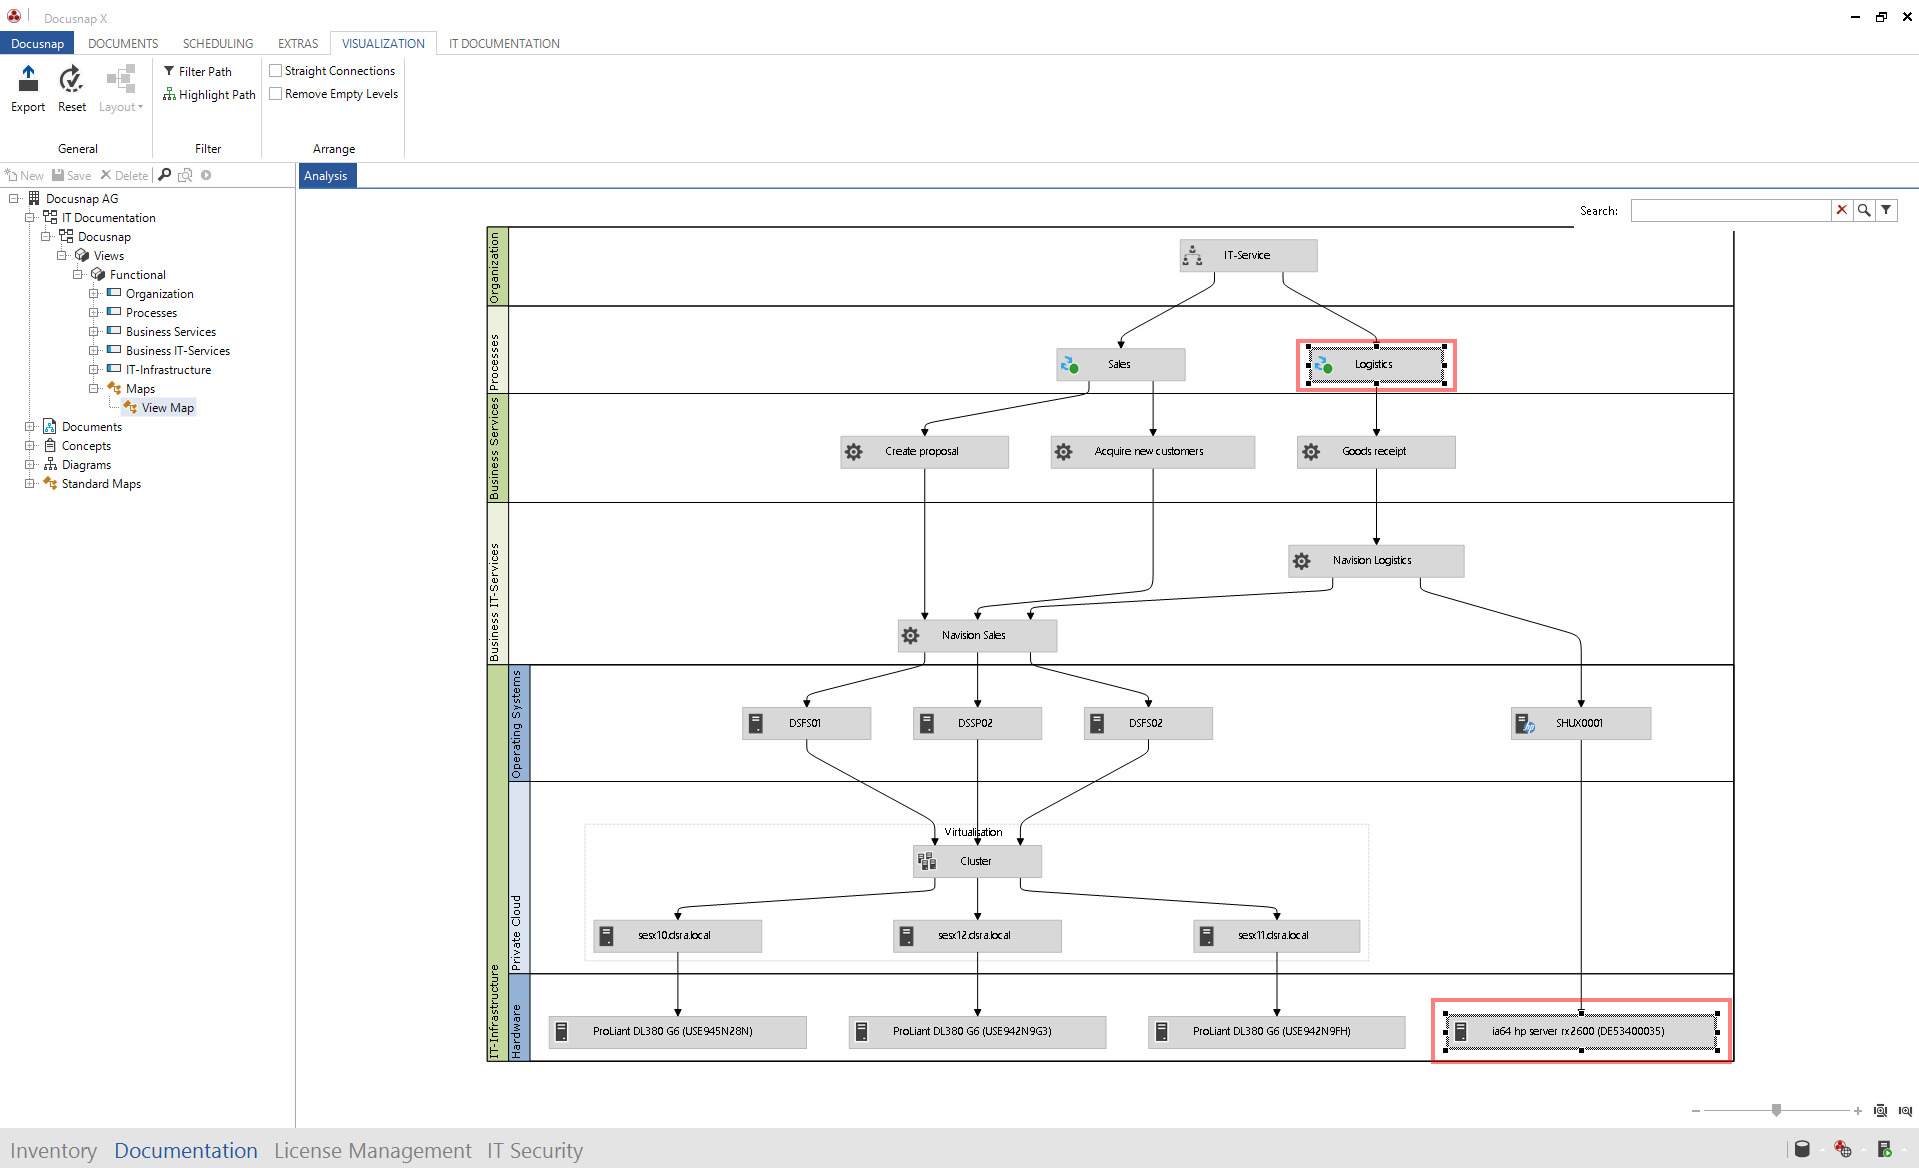 There's the function highlight path in the visualization of Docusnap